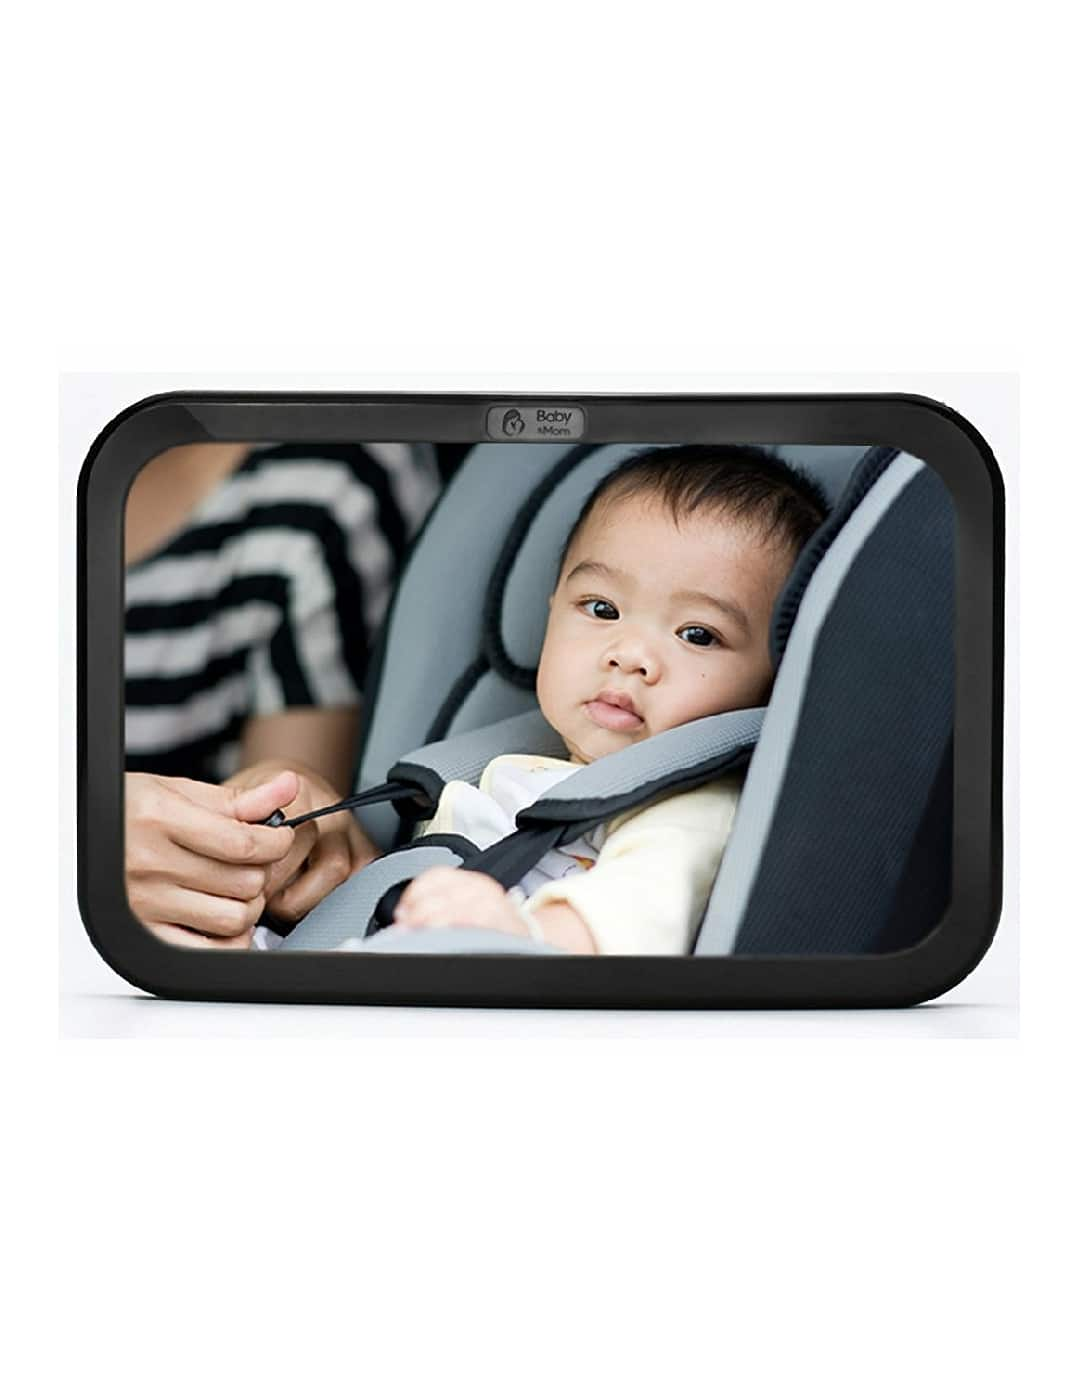 Back Seat Mirror - Rear View Baby Car Seat Mirror by Baby & Mom for $9.84 + Free Shipping